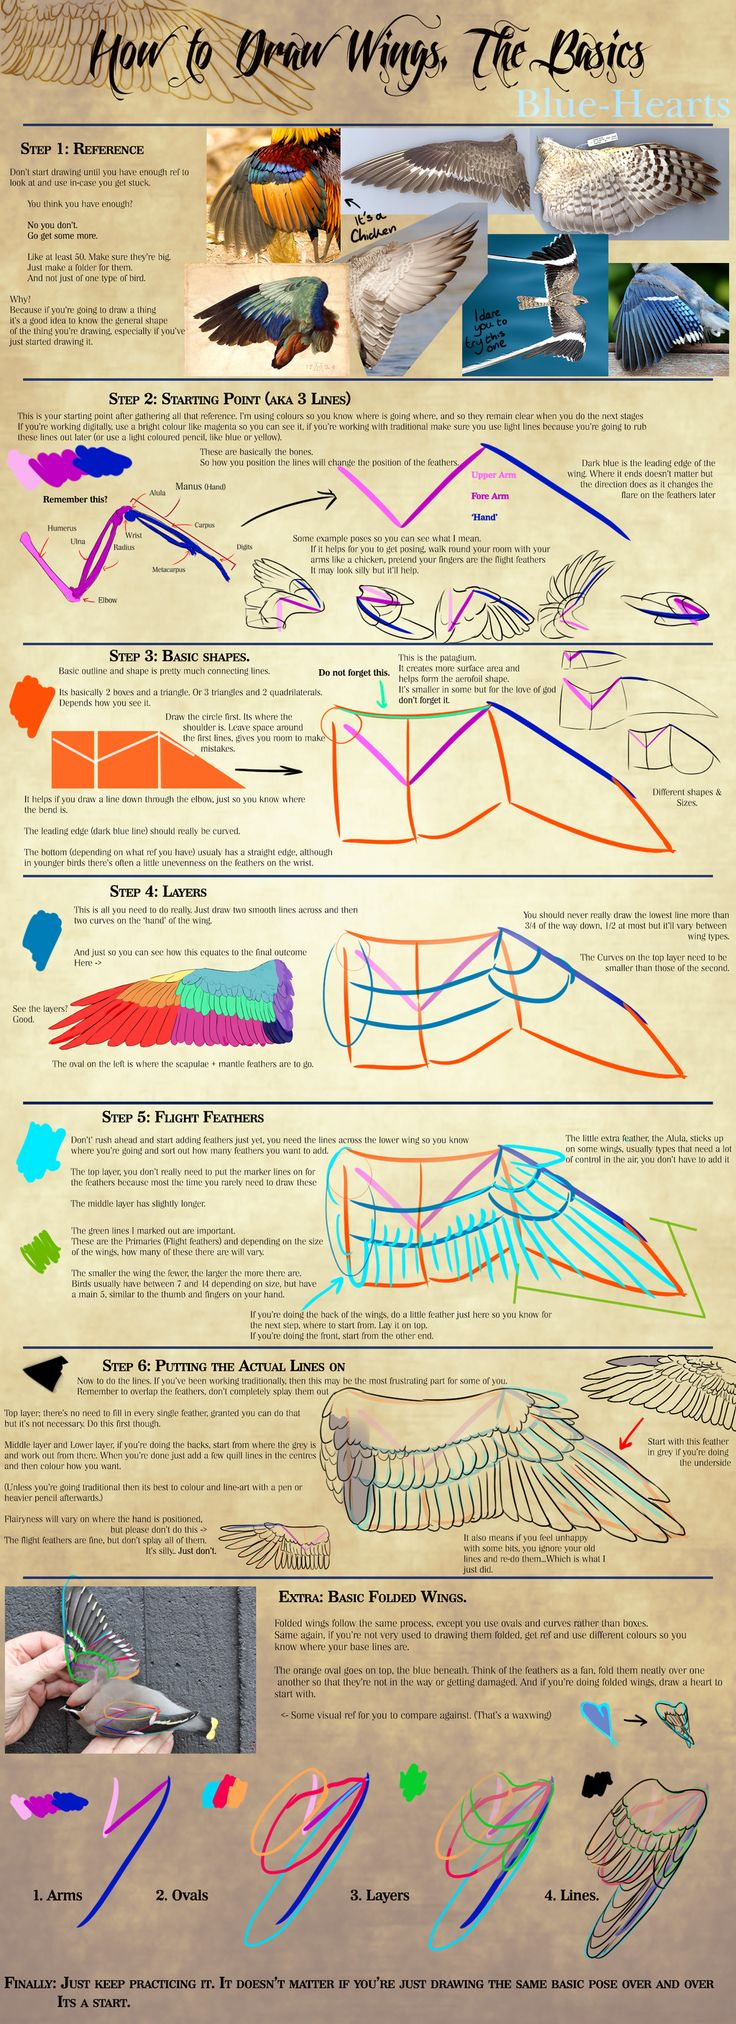 How to Draw Wings by Blue-Hearts.deviantart.com on @DeviantArt